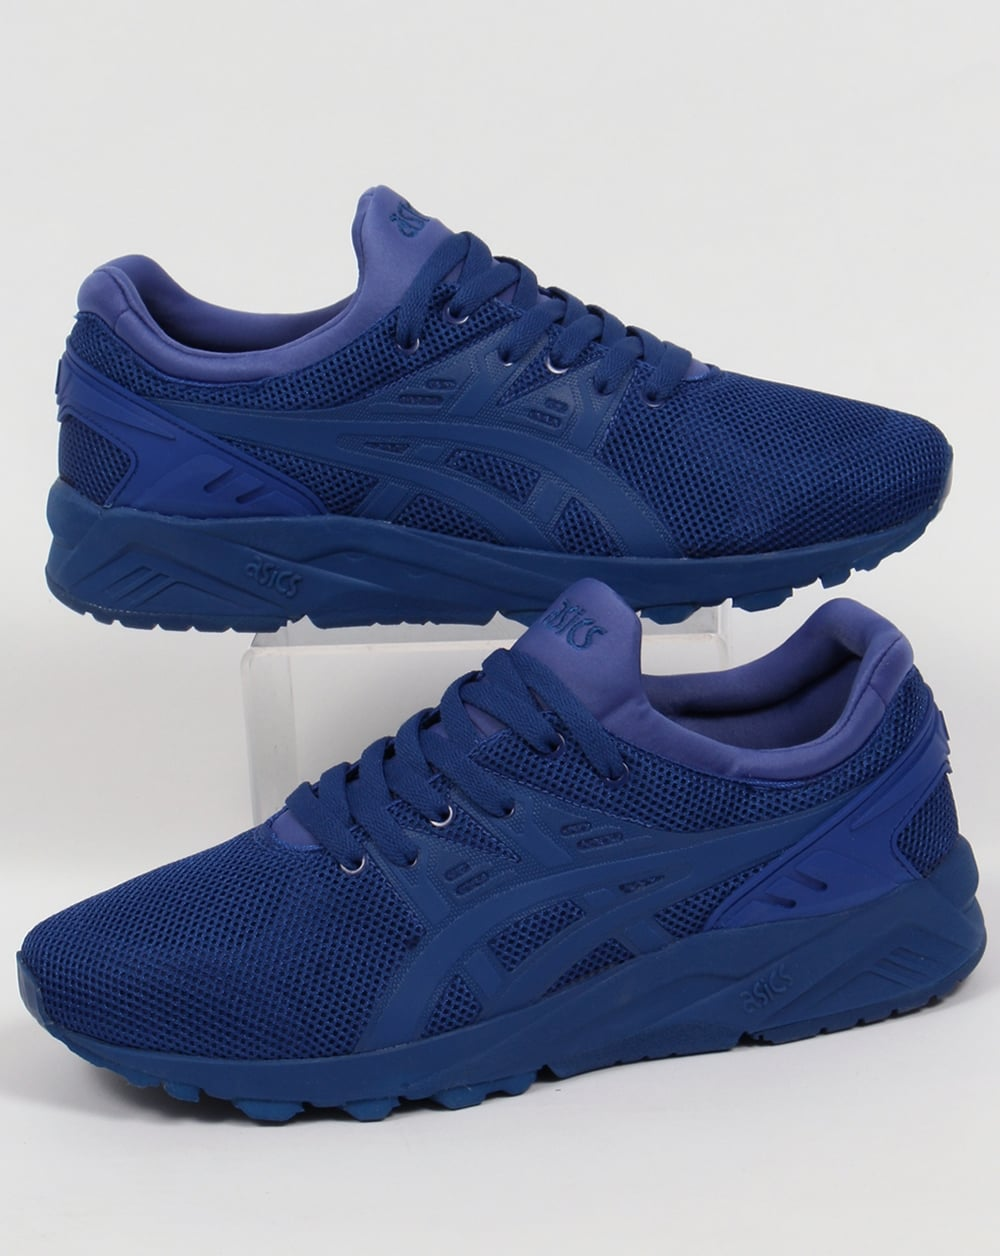 asics gel kayano evo trainers monaco blue tech pack shoes. Black Bedroom Furniture Sets. Home Design Ideas